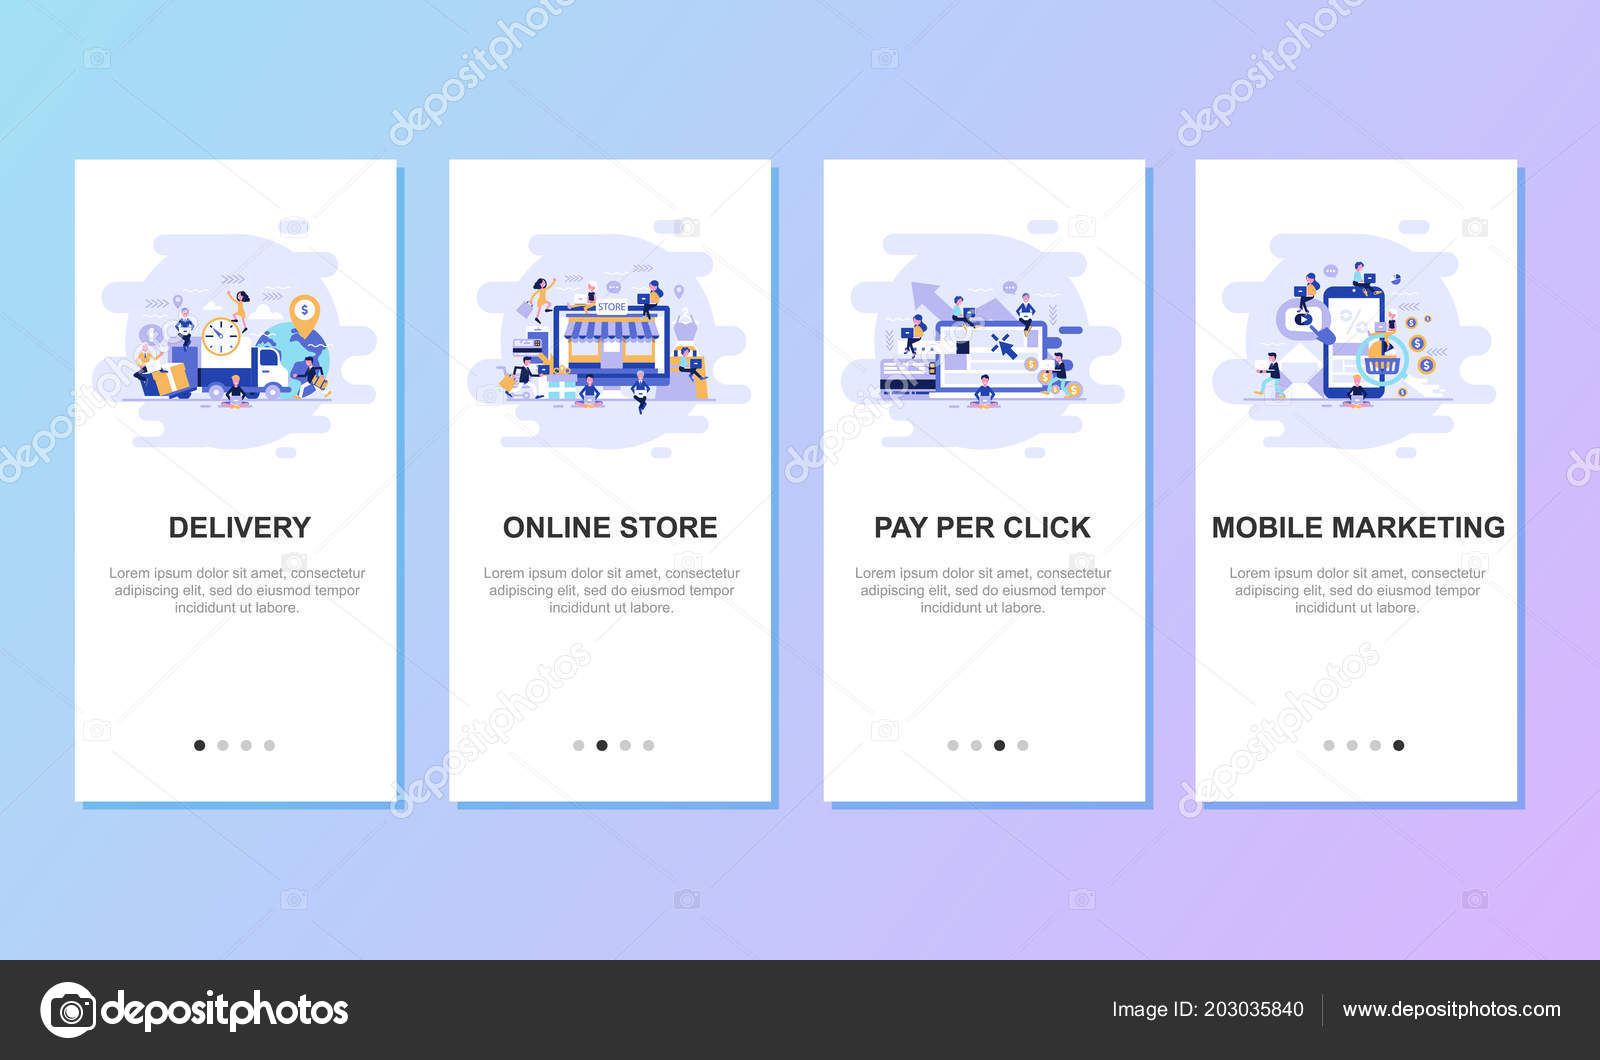 Onboarding Screens User Interface Kit Mobile App Templates Concept Modern Stock Vector C Alexdndz 203035840